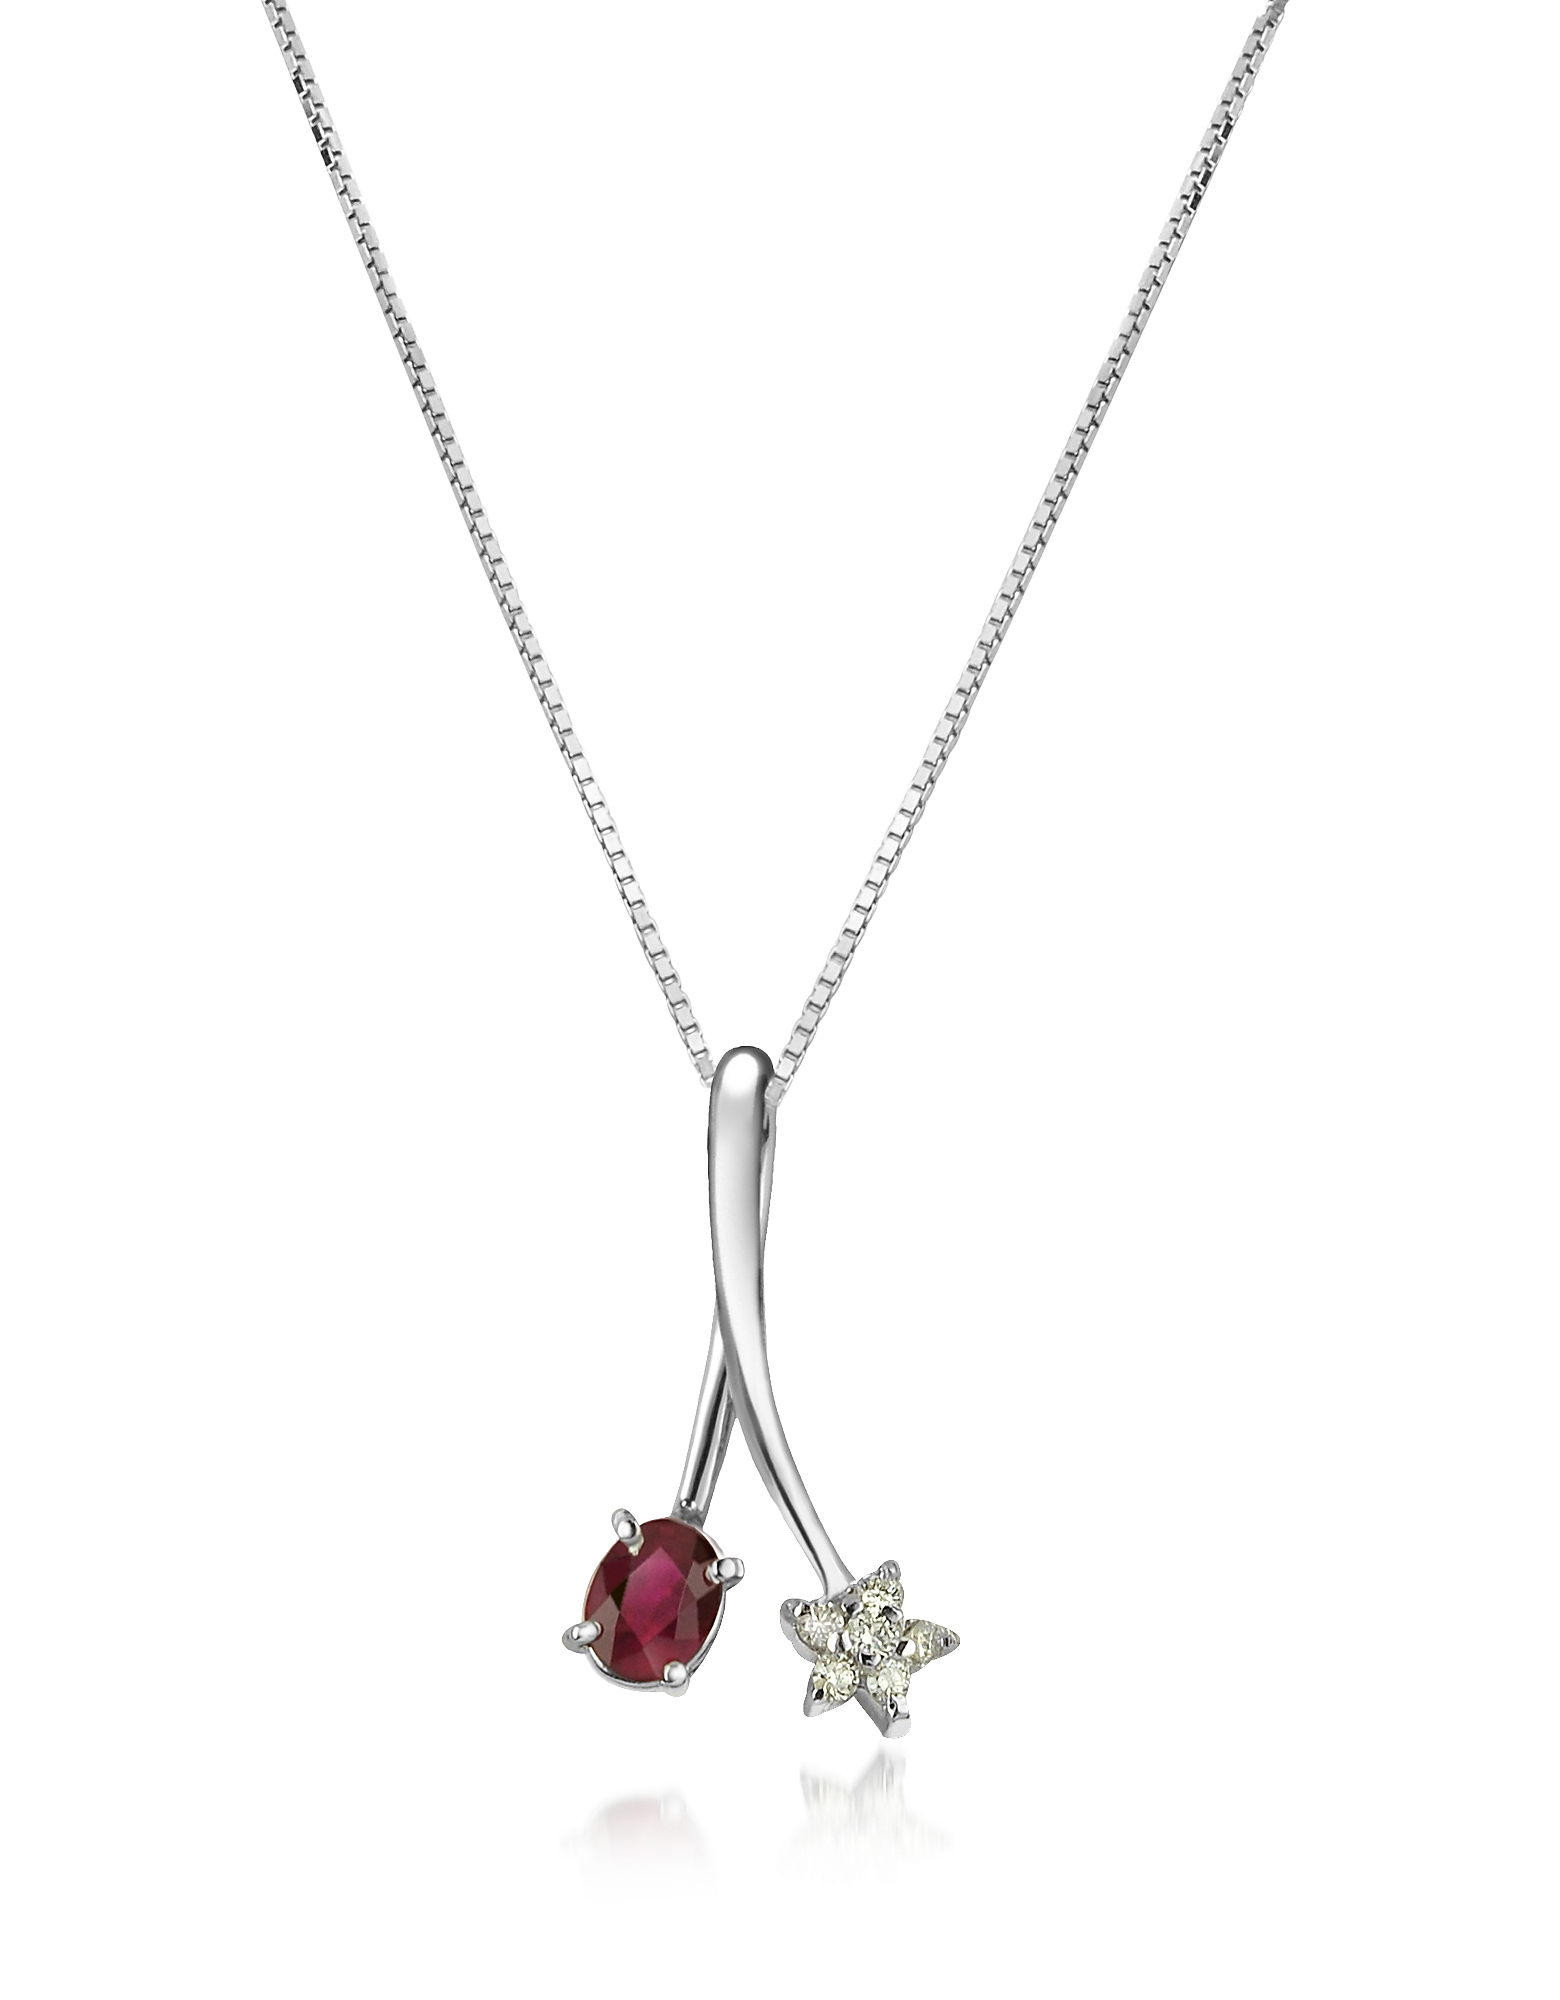 Incanto Royale Necklaces, Diamond Star and Ruby 18K Gold Pendant Necklace